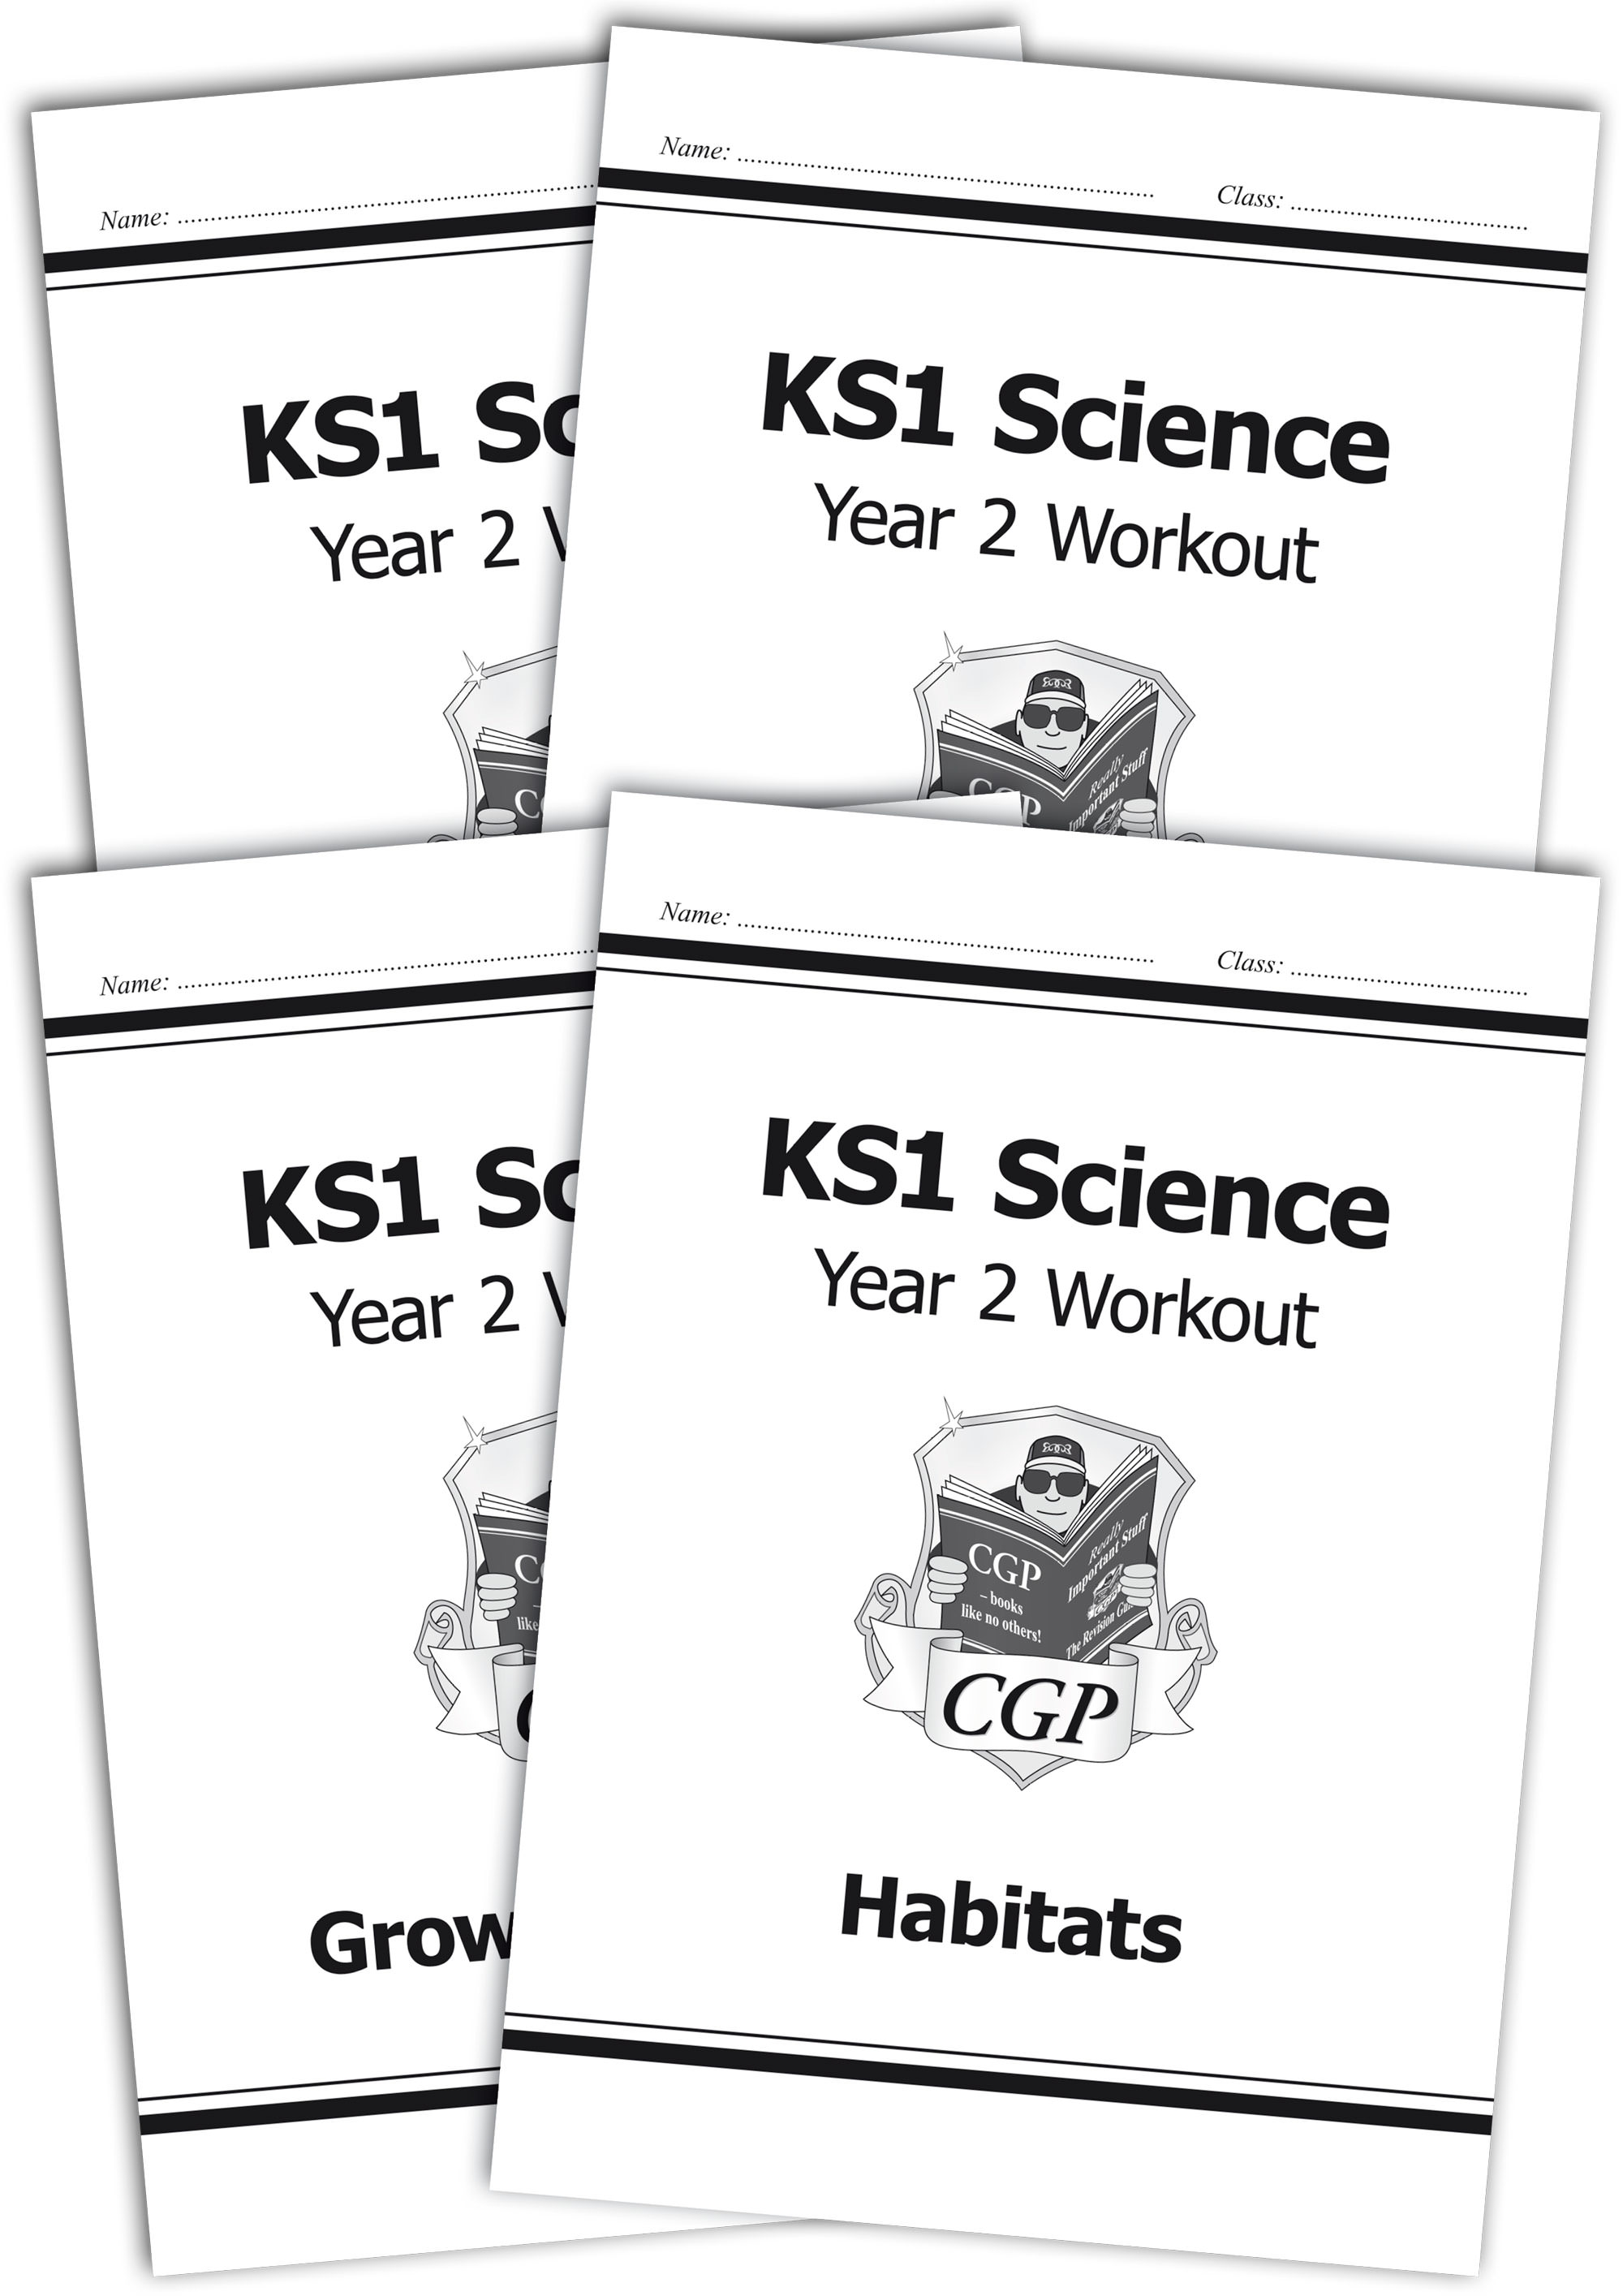 Ks1 Science Year Two Workout Habitats